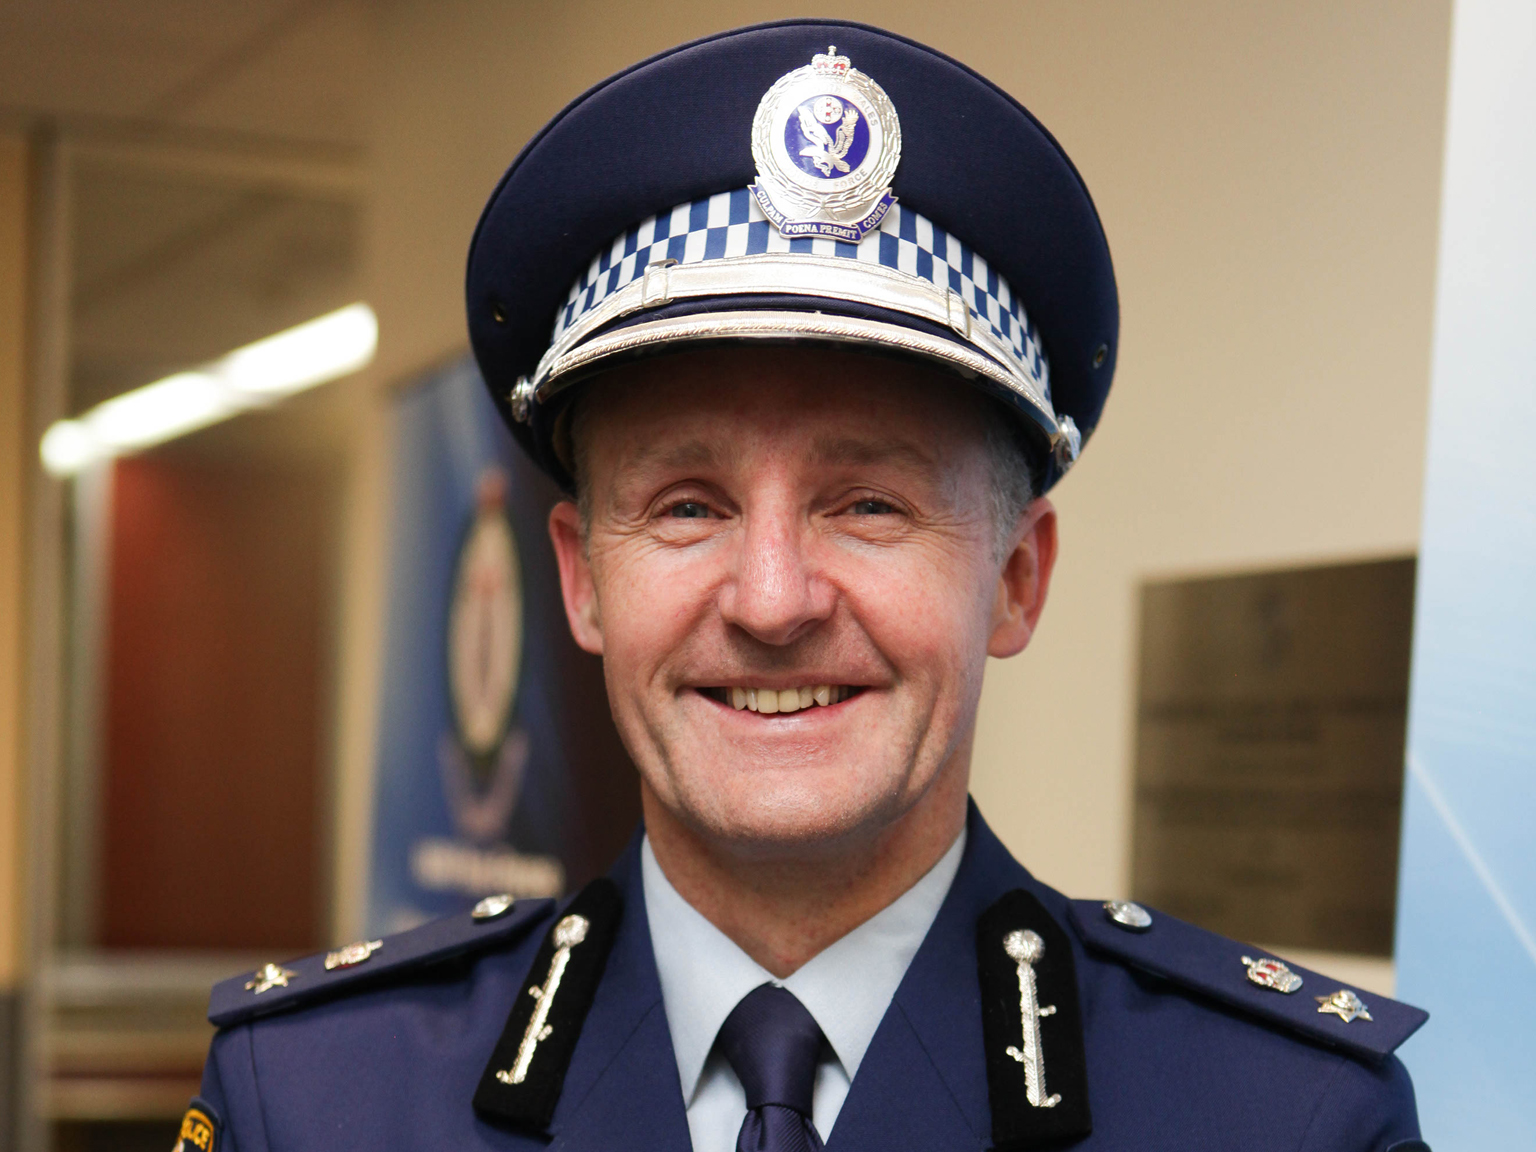 'I need to fix some things': police chief